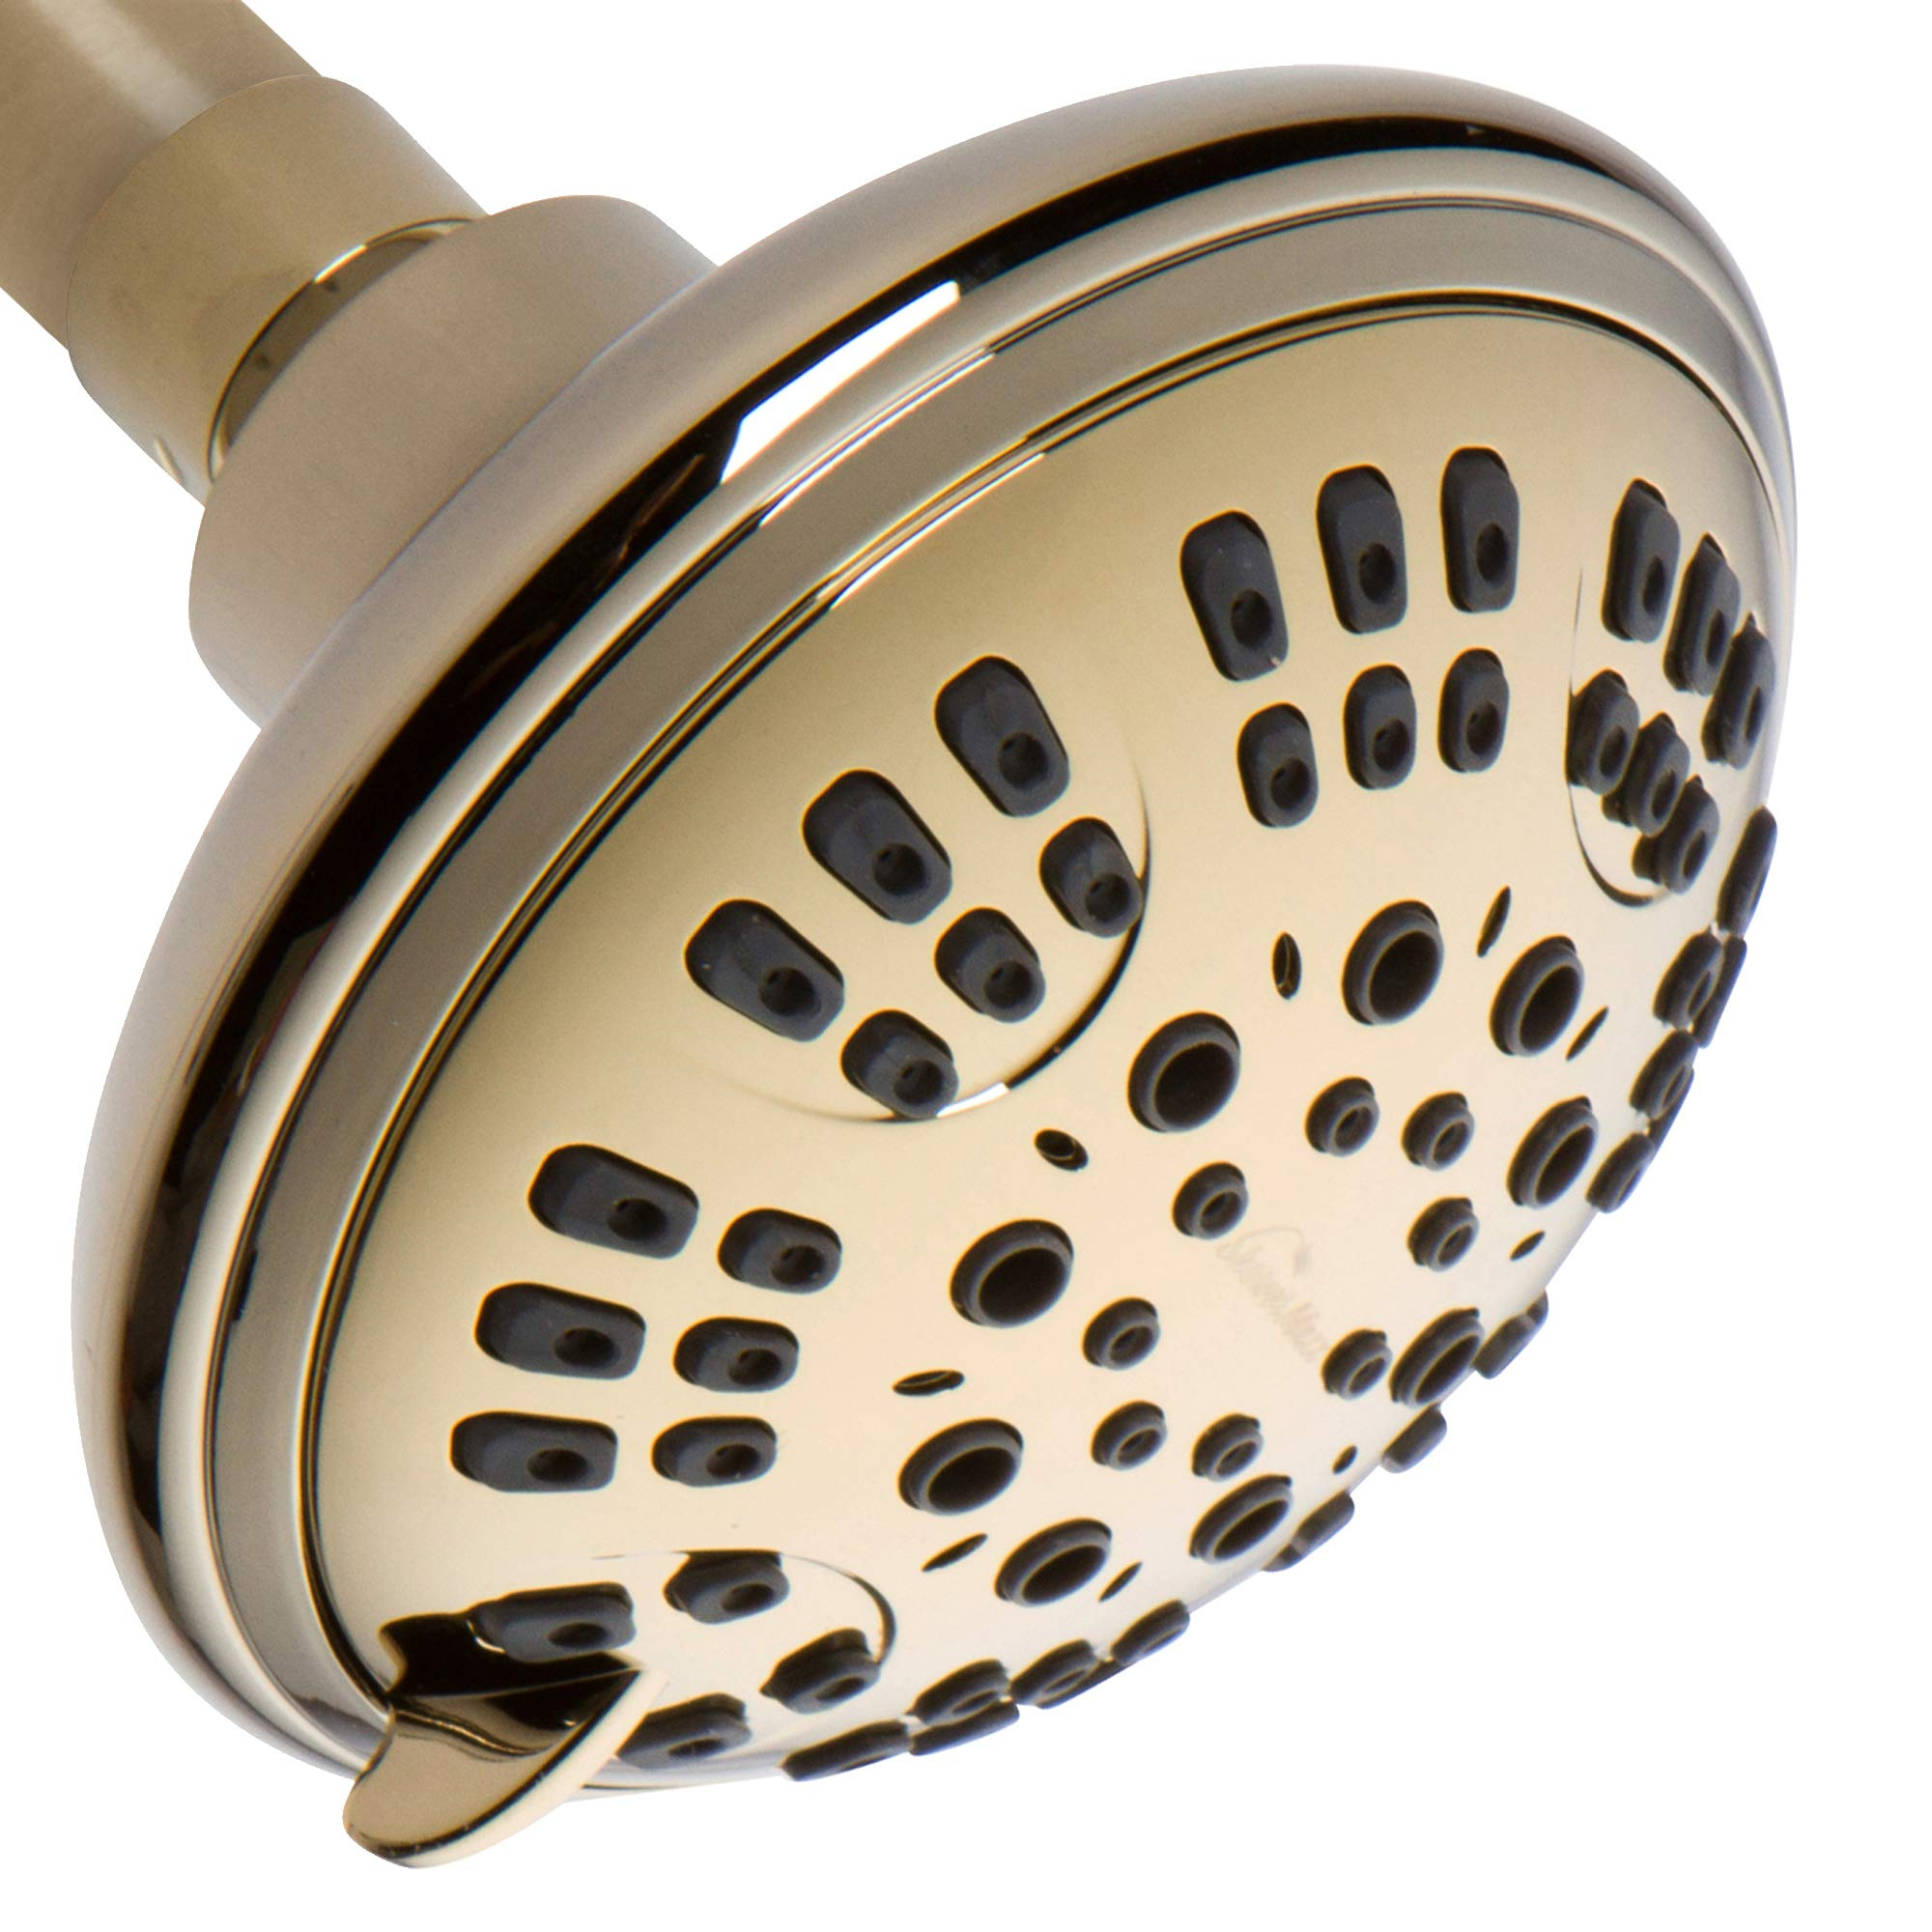 ShowerMaxx | 2.5 GPM Fixed Showerhead in Polished Brass Antique Finish |High Pressure Shower Head with 6 Setting Control | Power Massage | Self Cleaning Nozzels | Bathroom Wall Mount | Adjustable Head